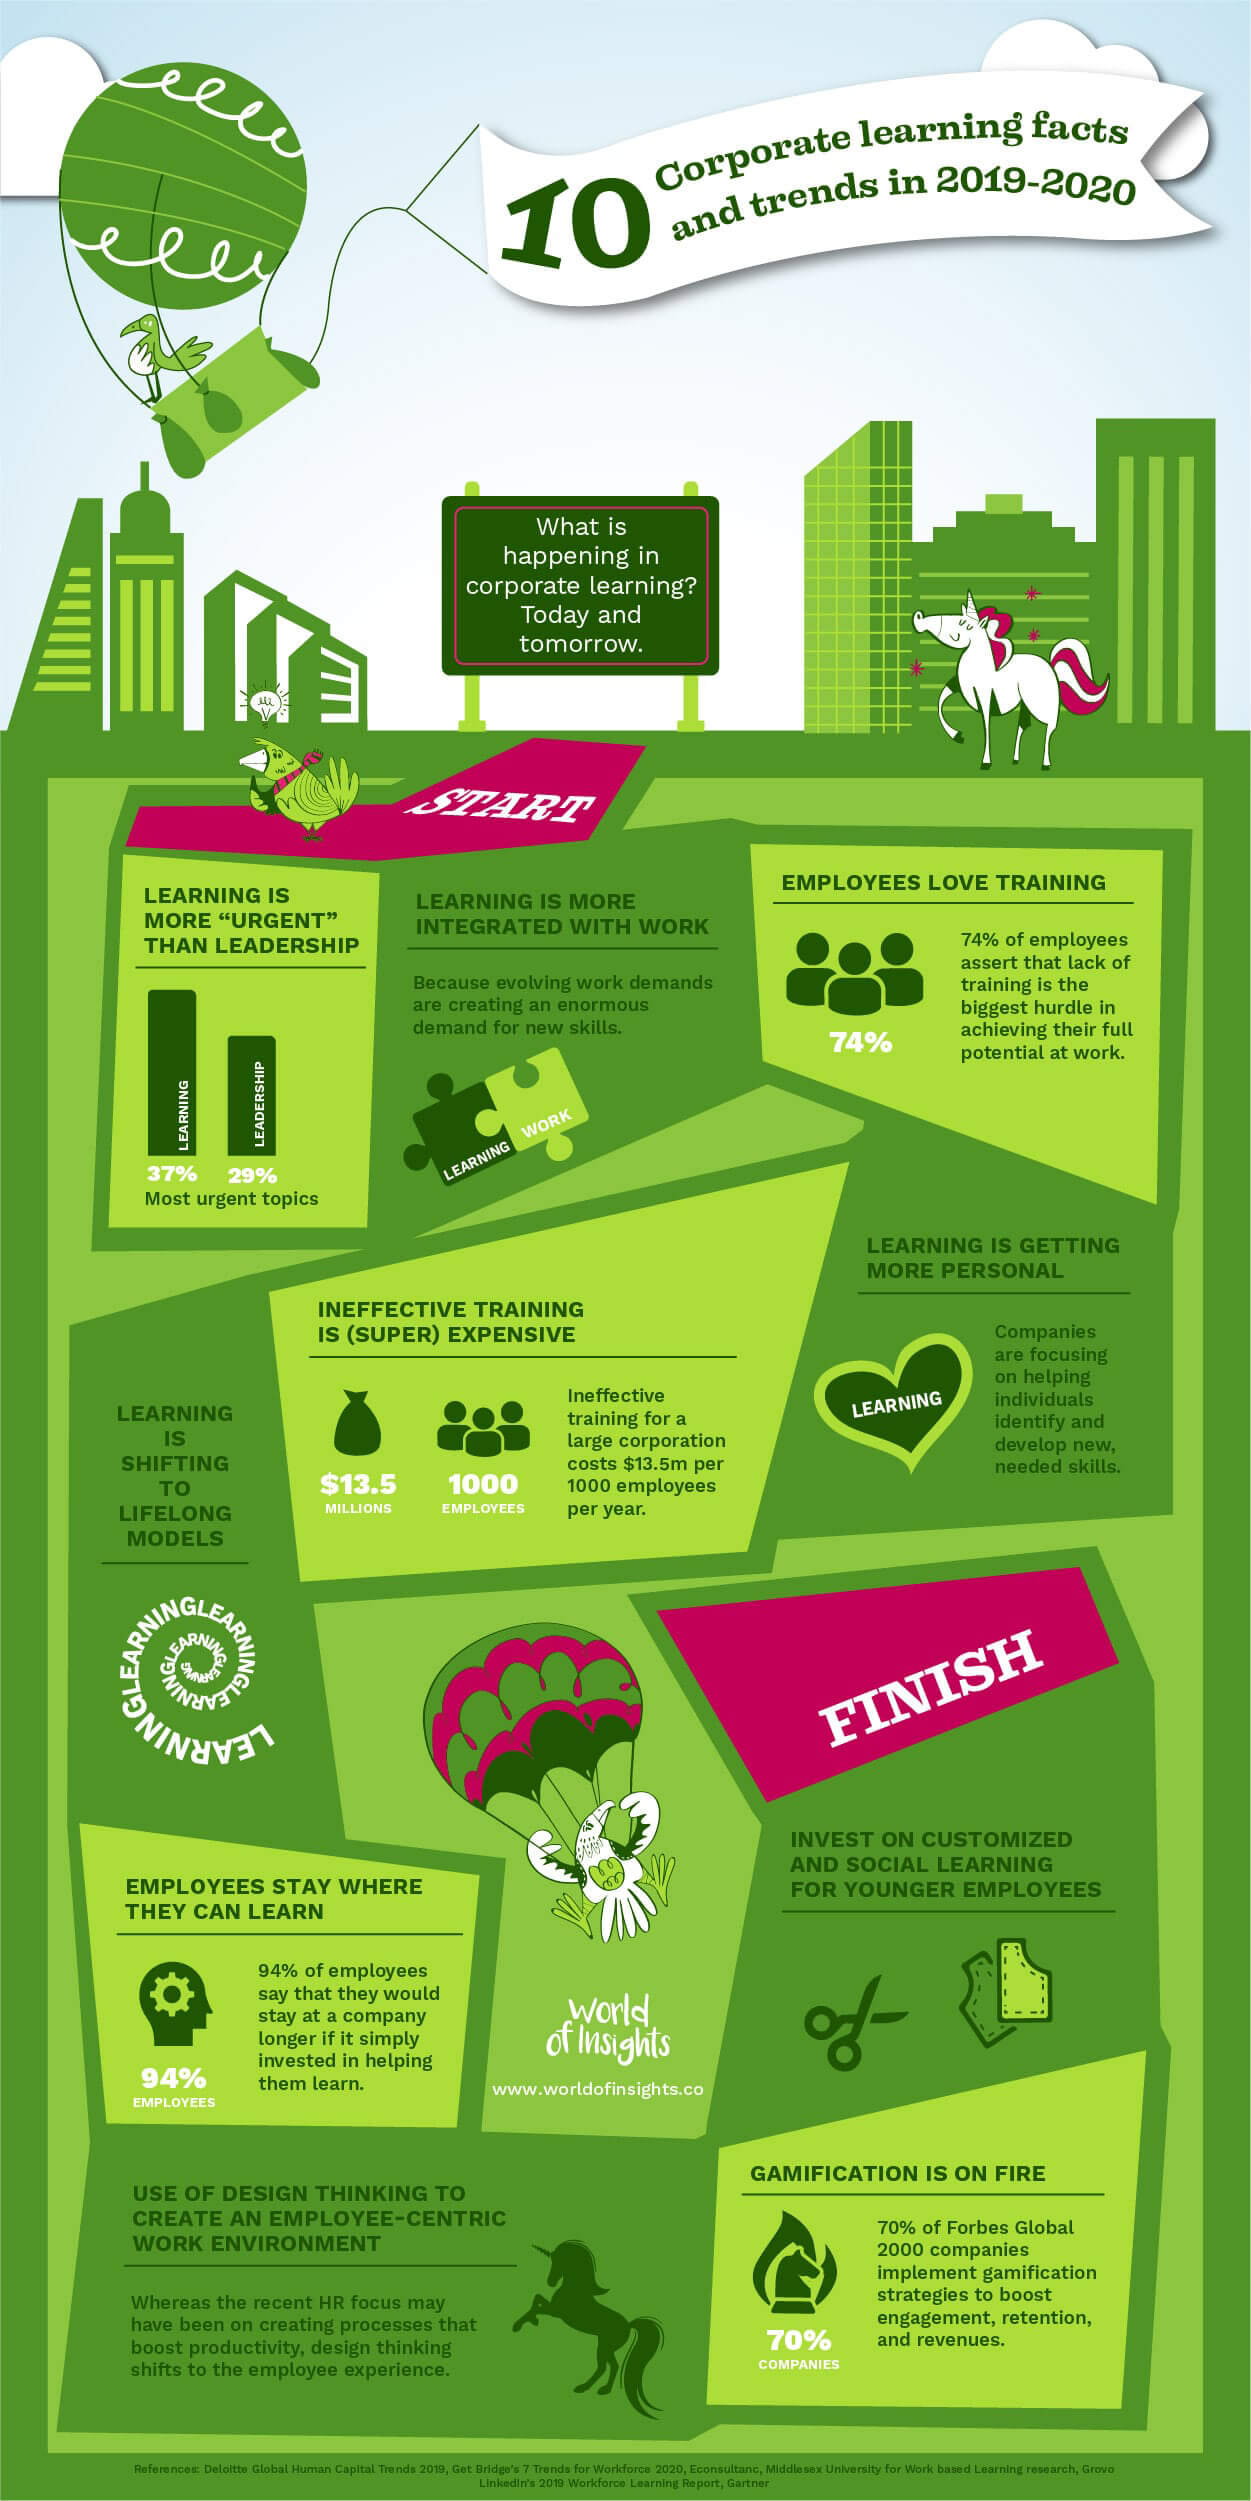 Infographic: Corporate learning trends and facts